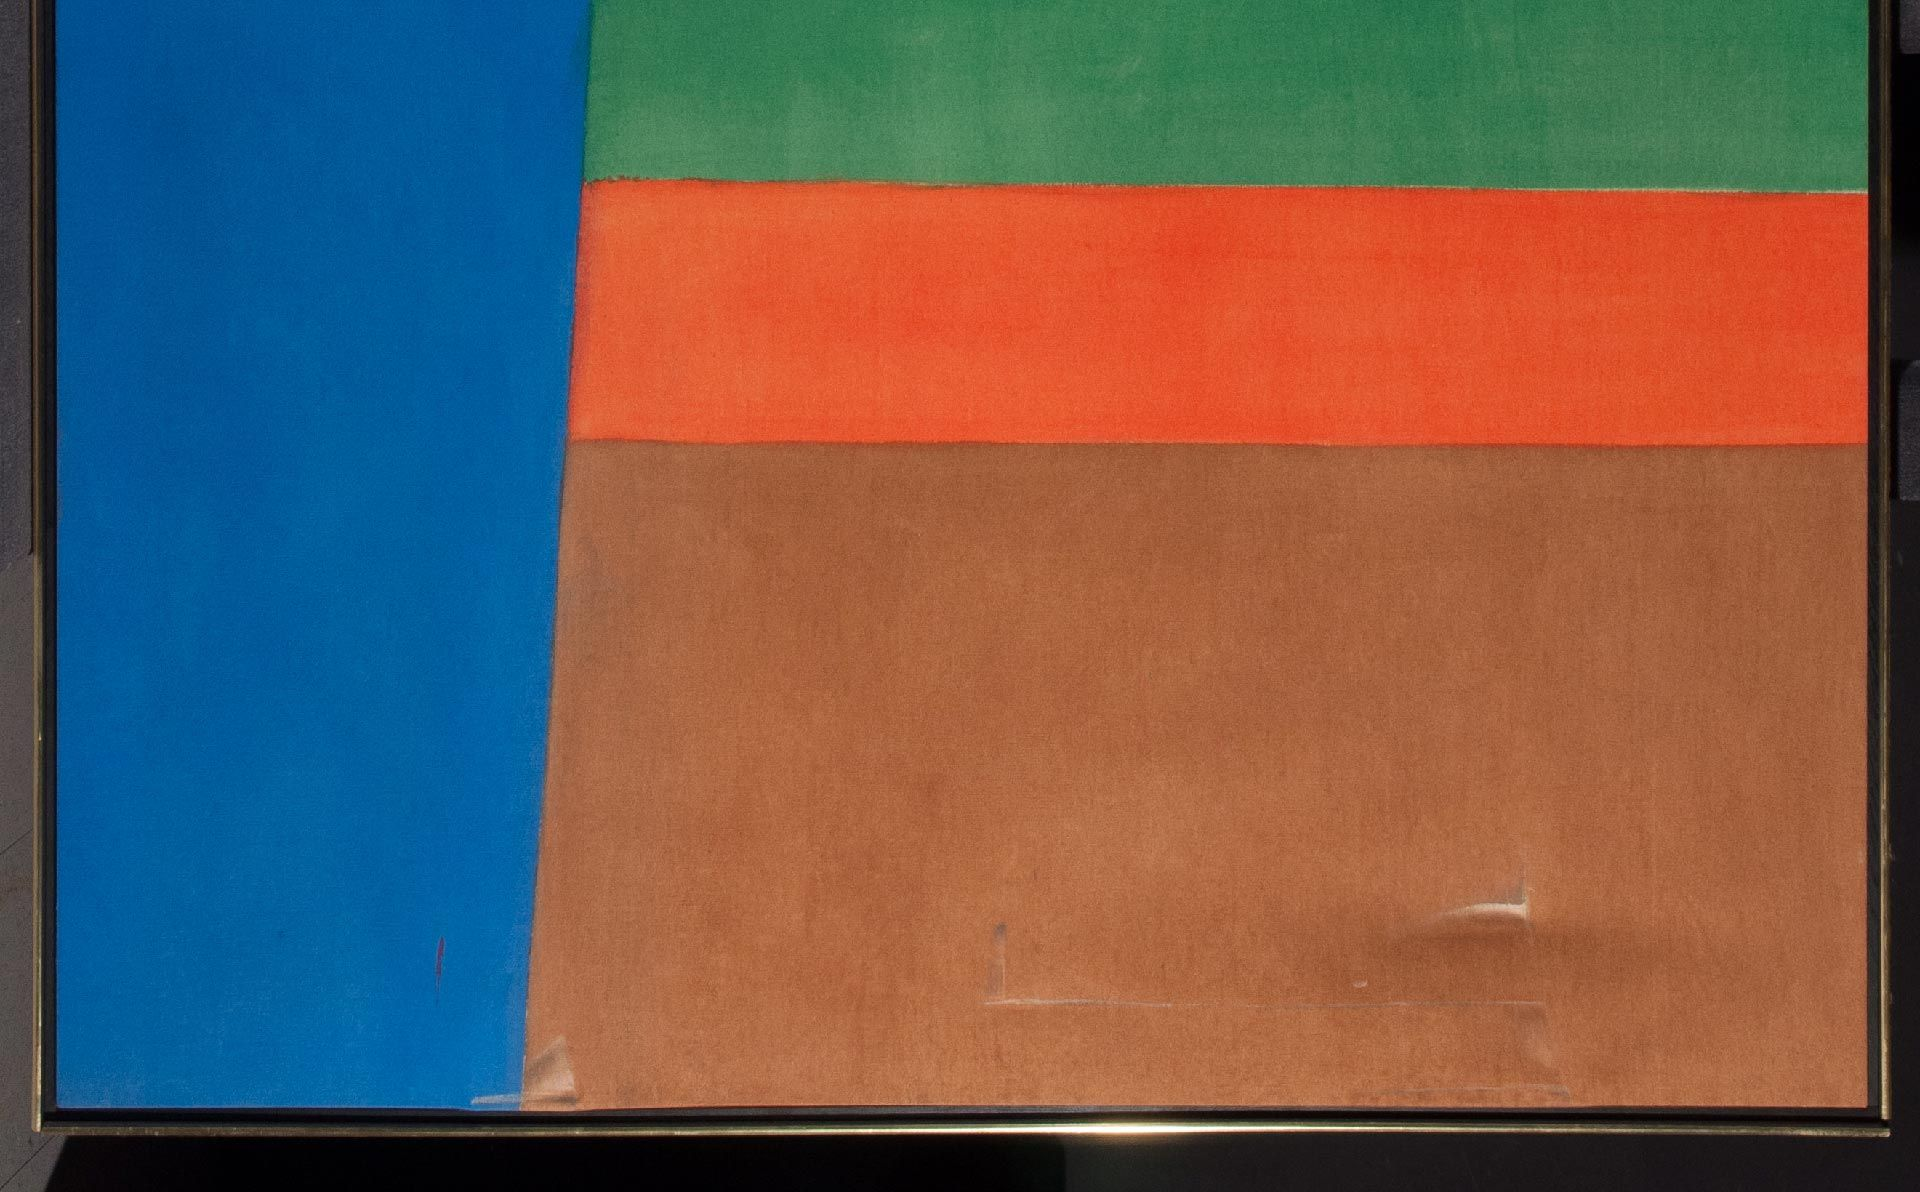 The impact from an accident caused a large indentation in the canvas in the lower section of the composition.